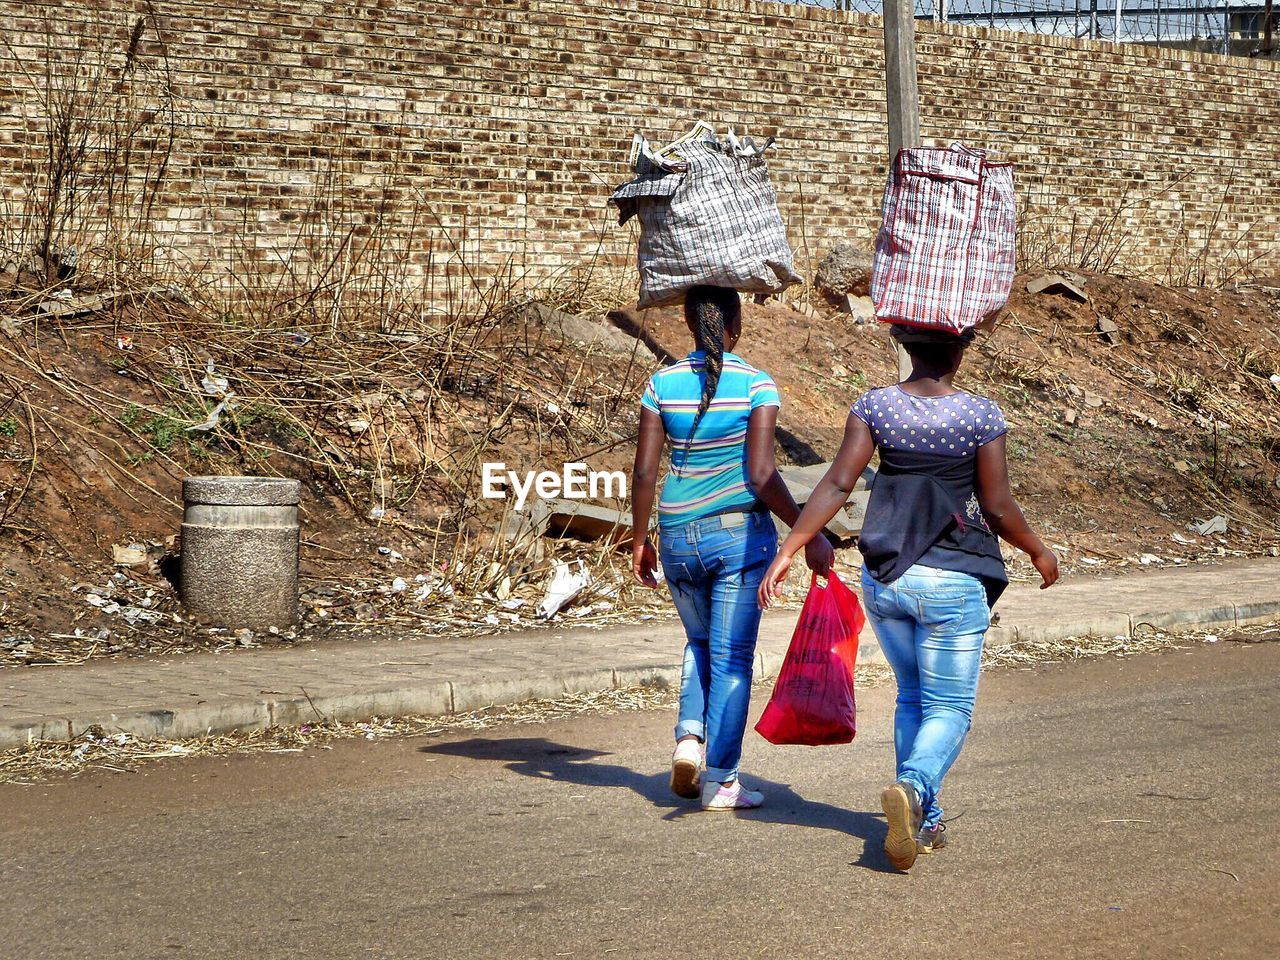 Rear View Of Women Carrying Bags On Head While Walking On Street